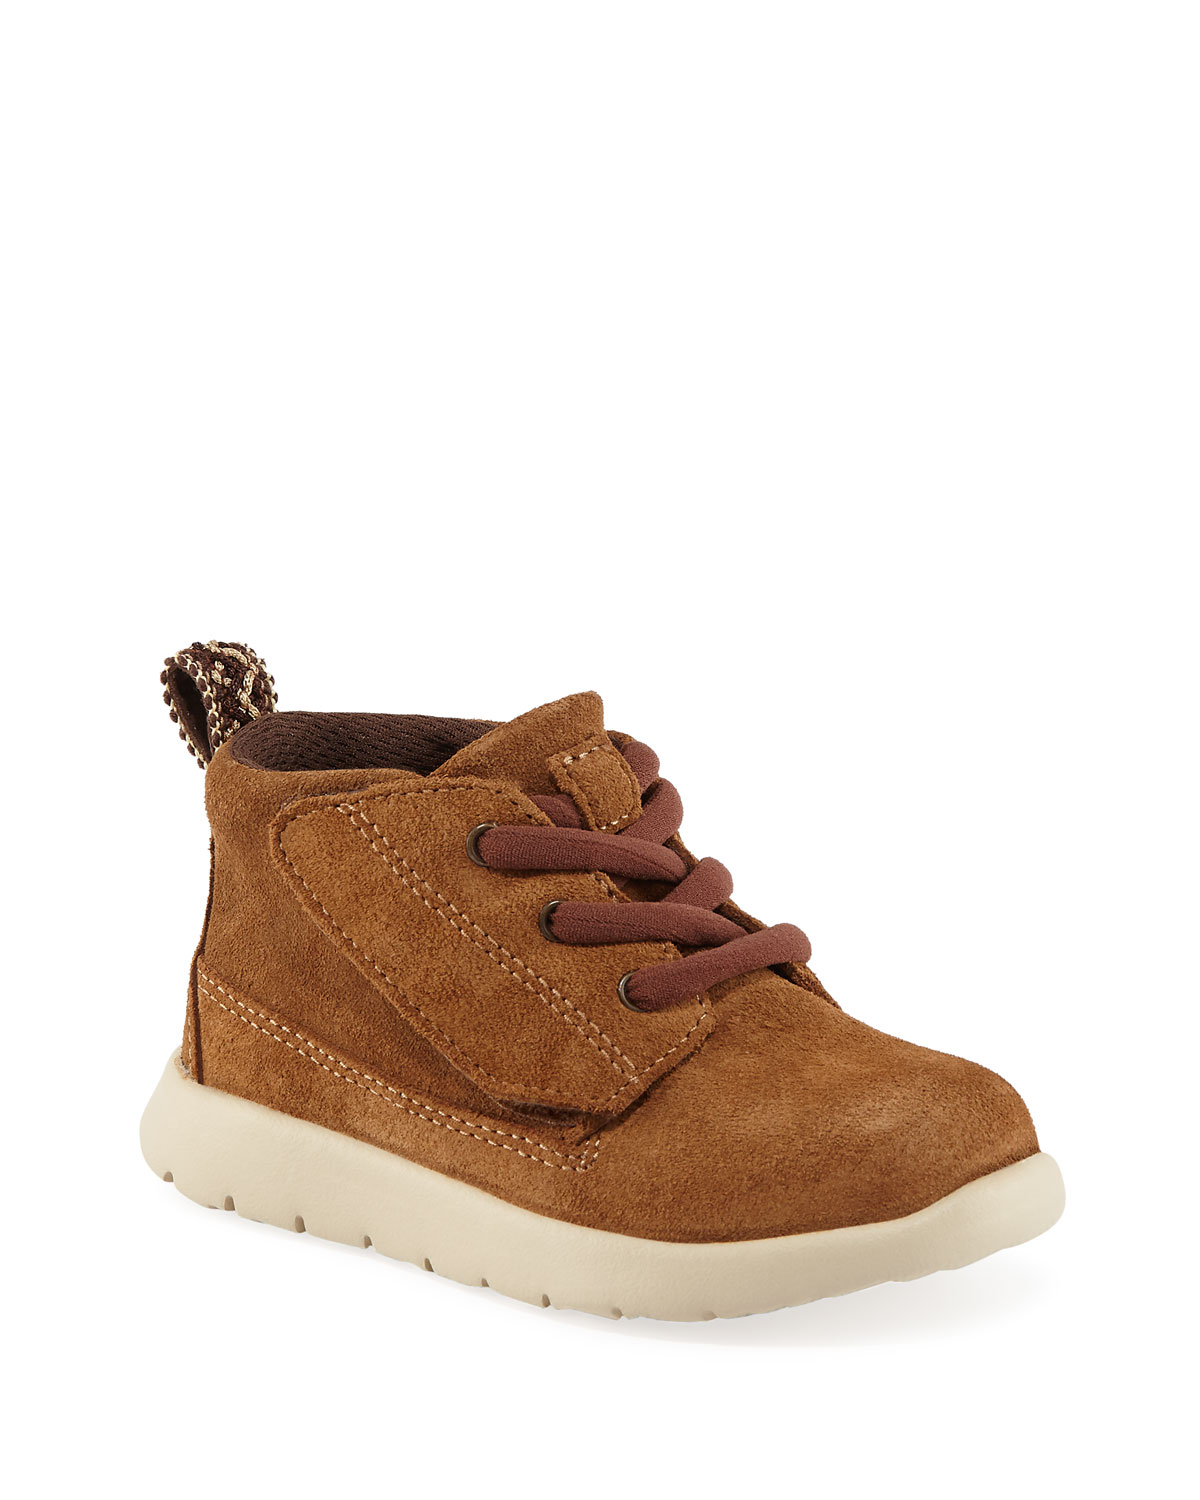 1c9c05acb5a Canoe Suede Boots, Baby/Toddler in Brown